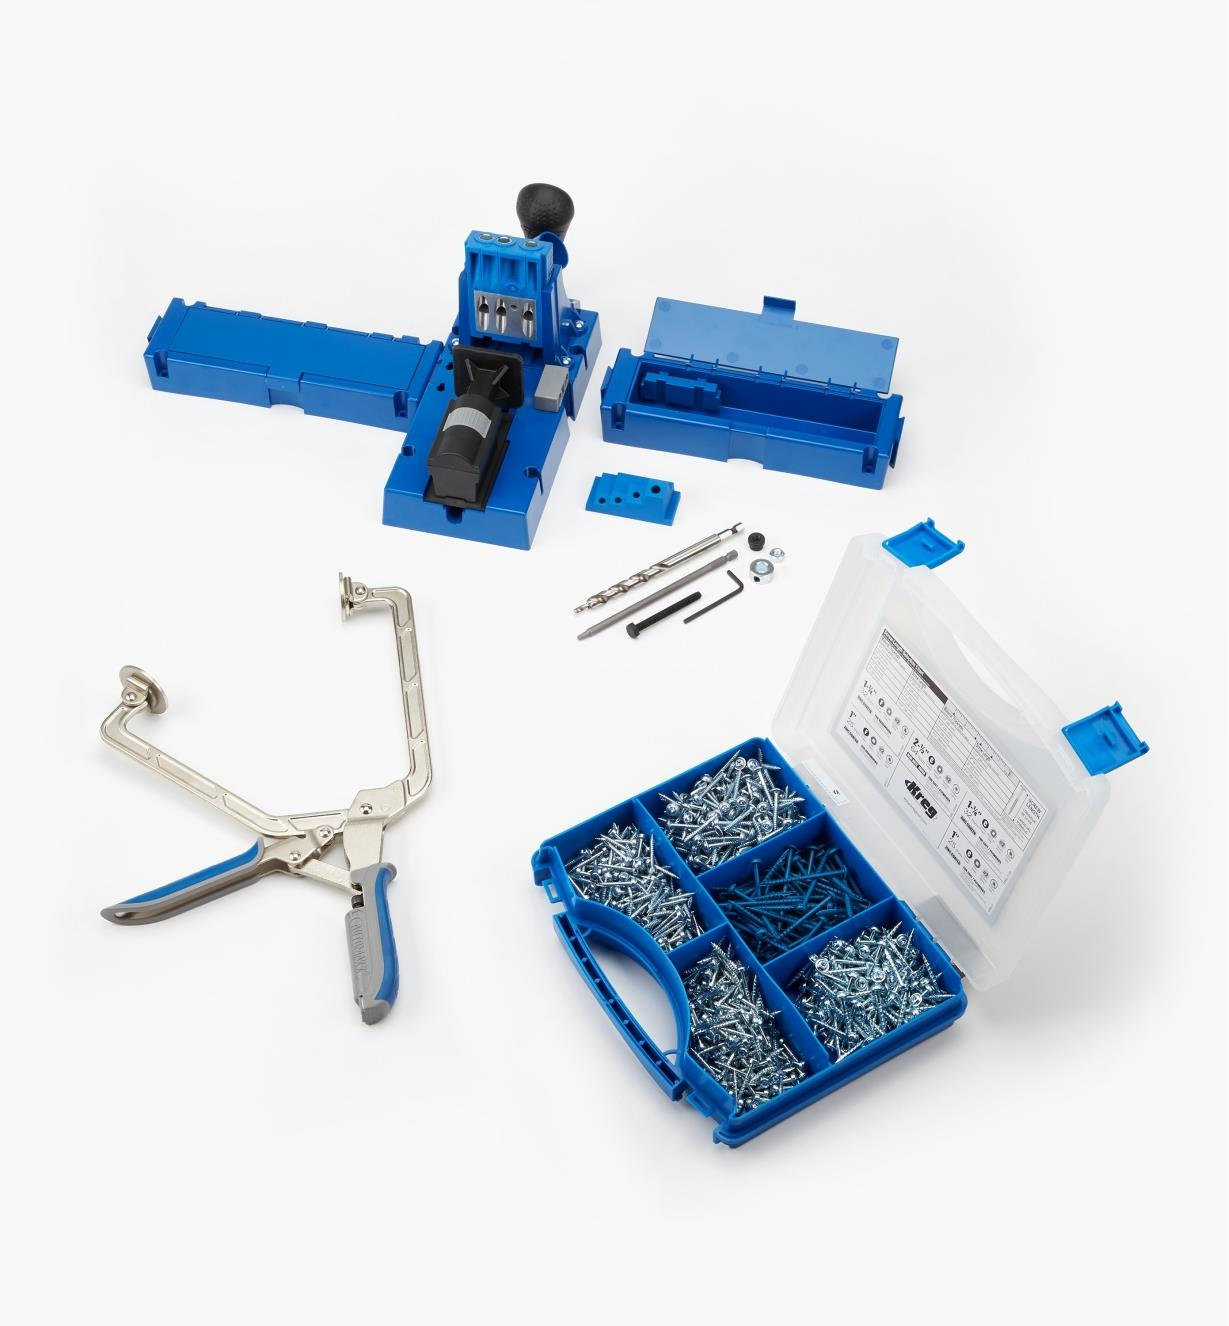 25K5920D - Kreg K5 Pocket-Hole Jig, Screw Kit & Clamp